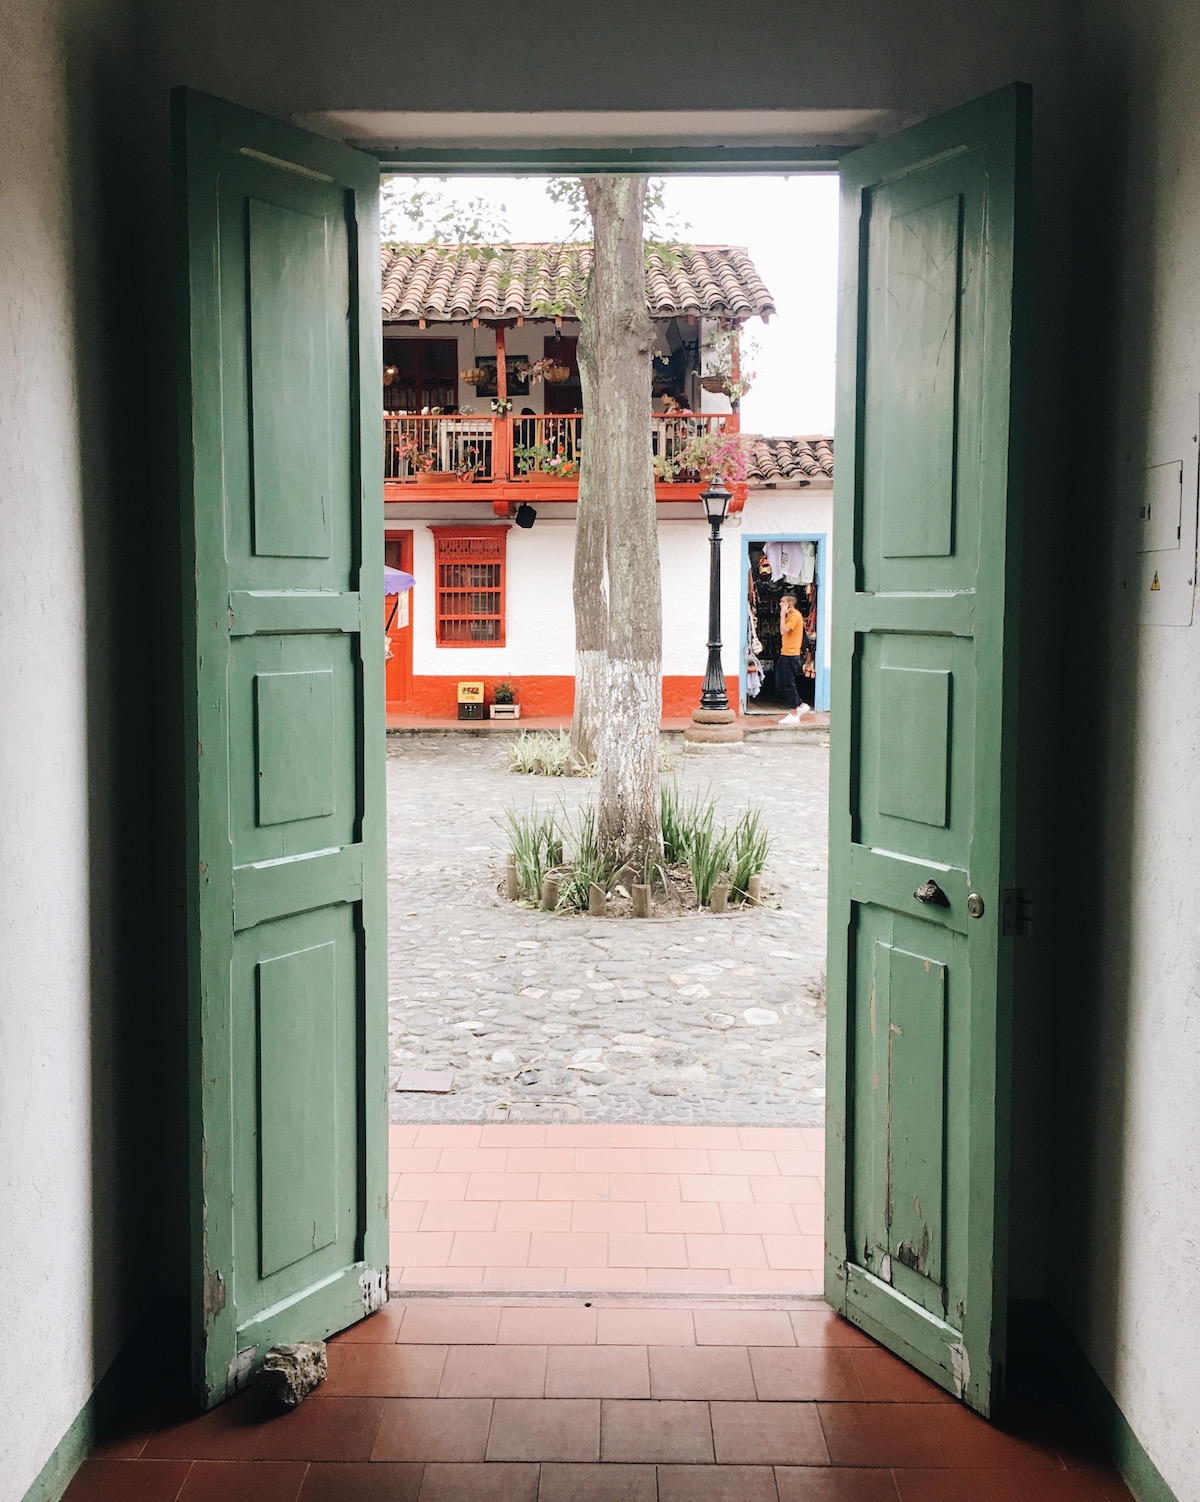 Pueblito Paisa is a recreated town at the top of a hill in the middle of Medellín. One of the best features is the 360-degree view of the whole city from the peak.